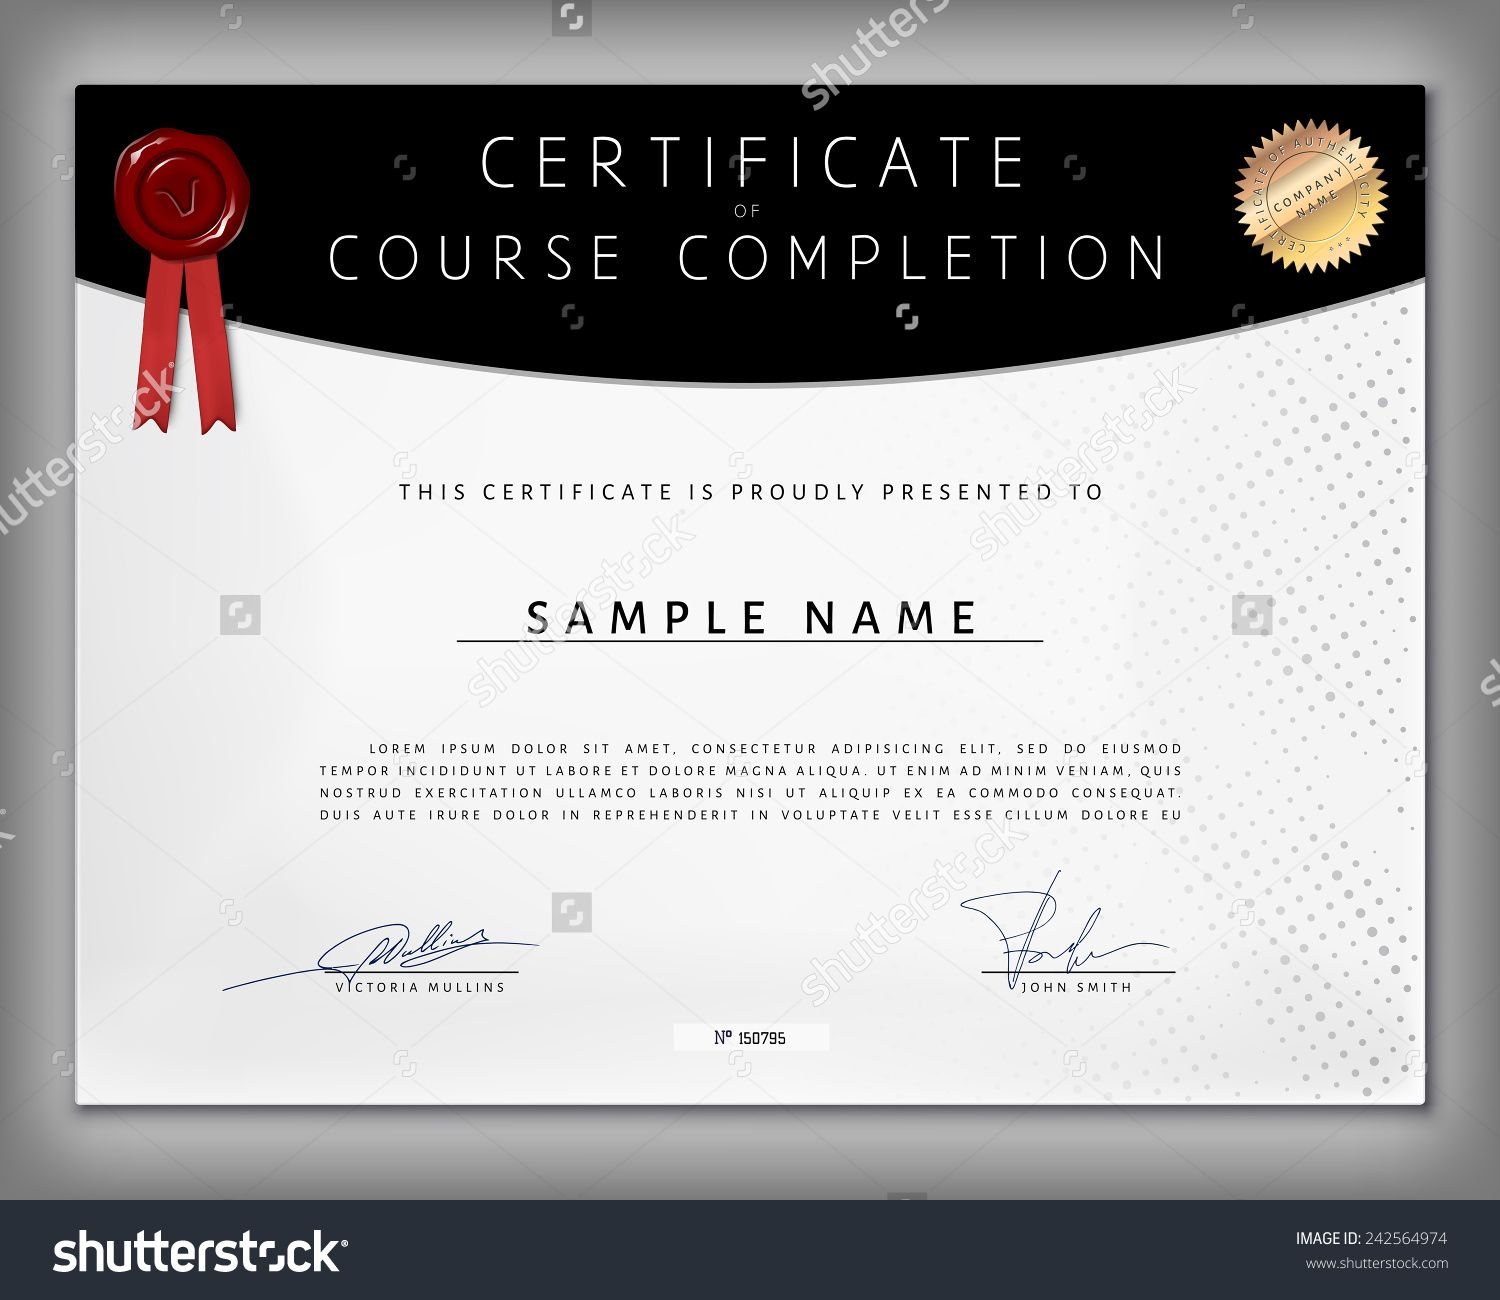 Certificate Of Computer Programming Course Completion On Dotted